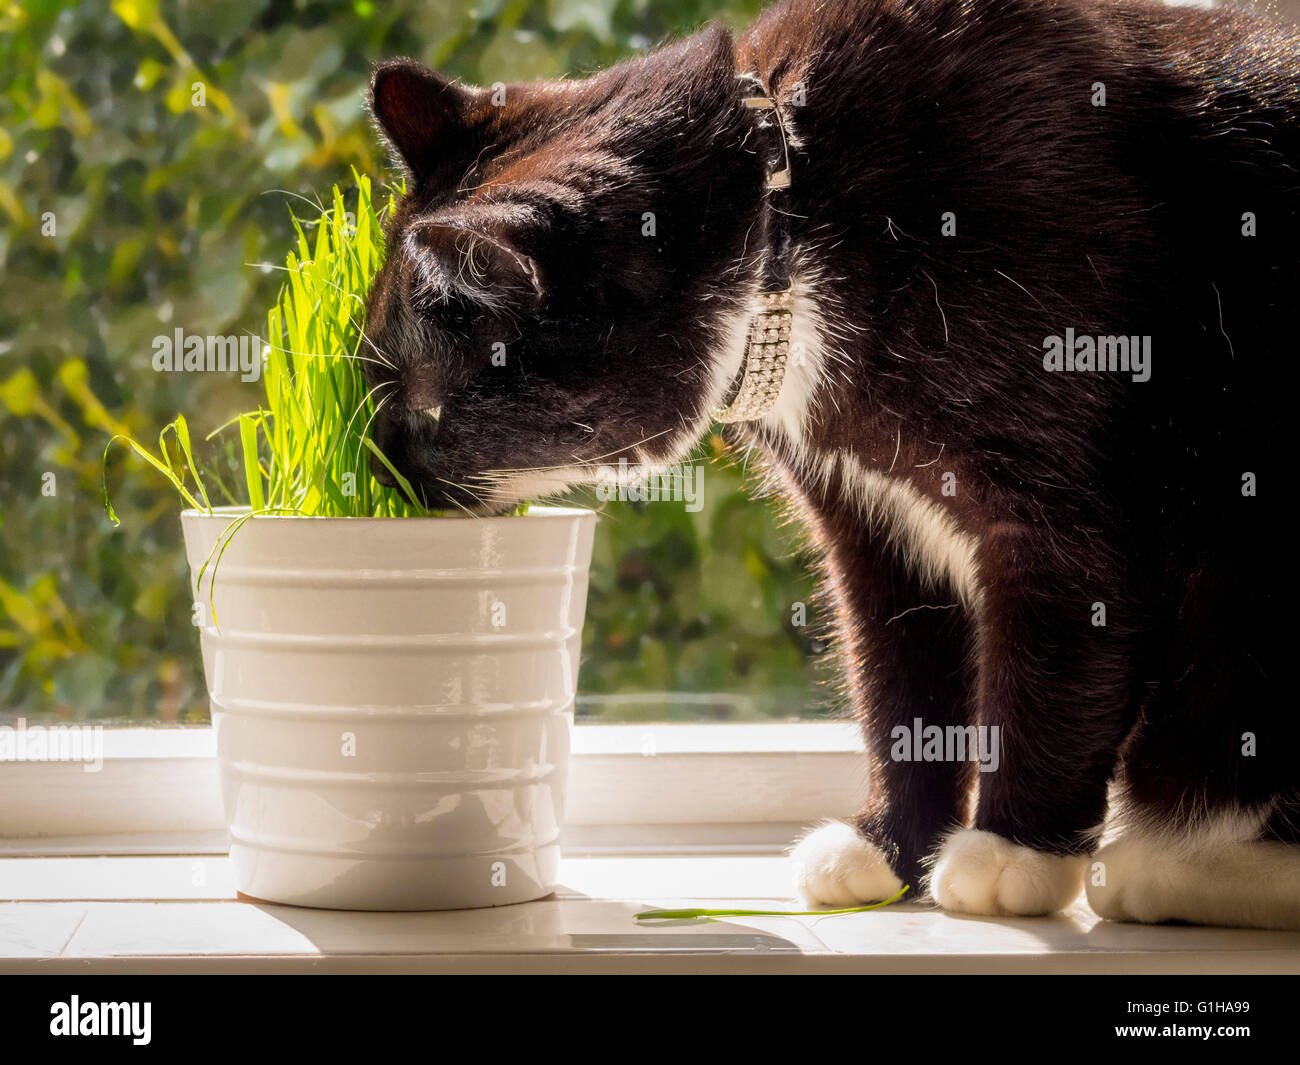 Black and white eating 'cat grass' growing in pot on windowsill - Stock Image